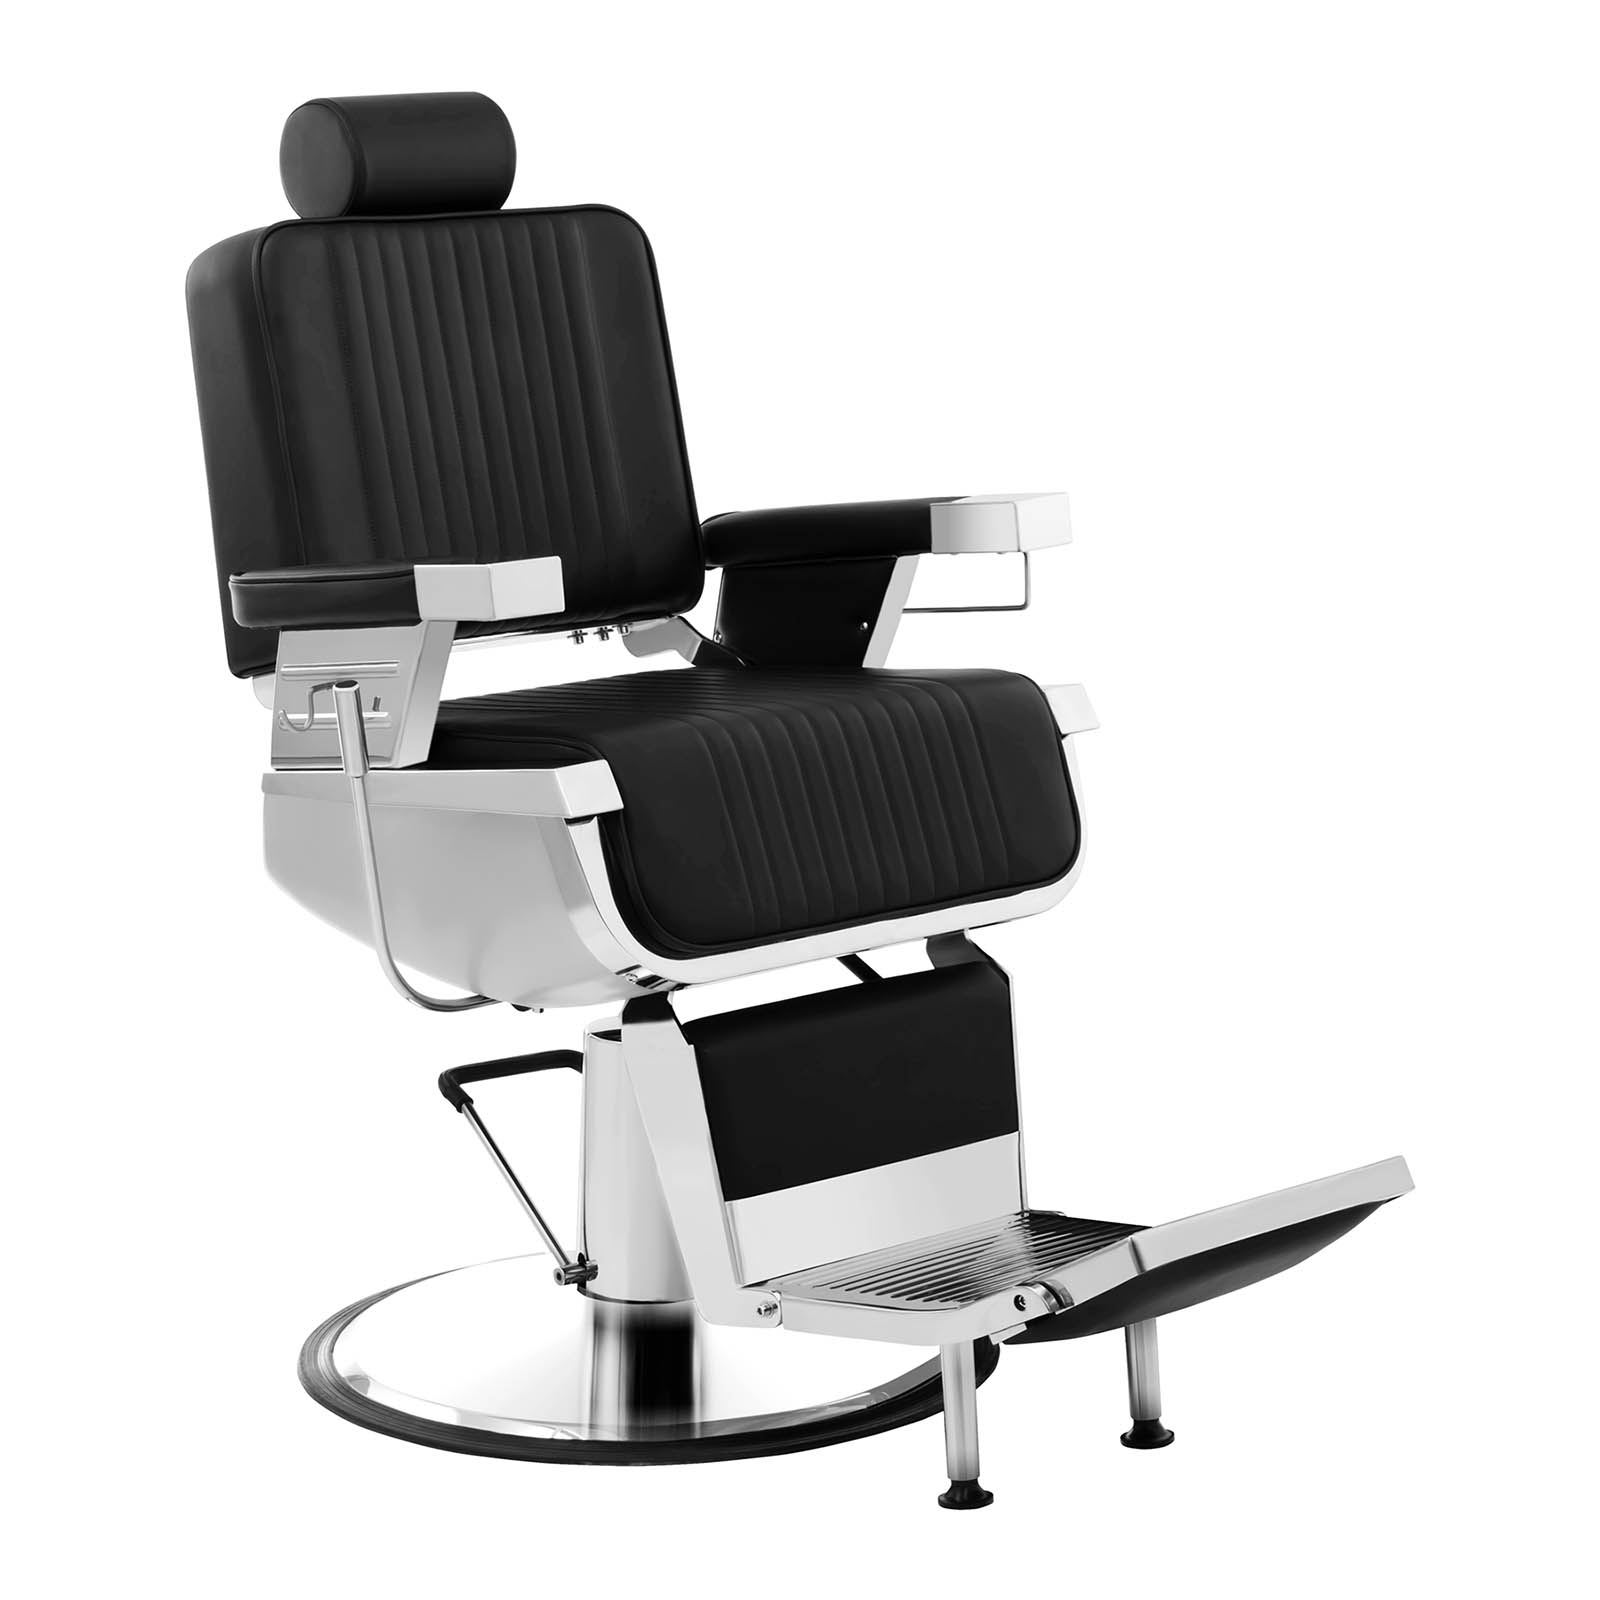 salon chairs ebay drexel heritage dining barber chair seat rotatable adjustable hairdresser